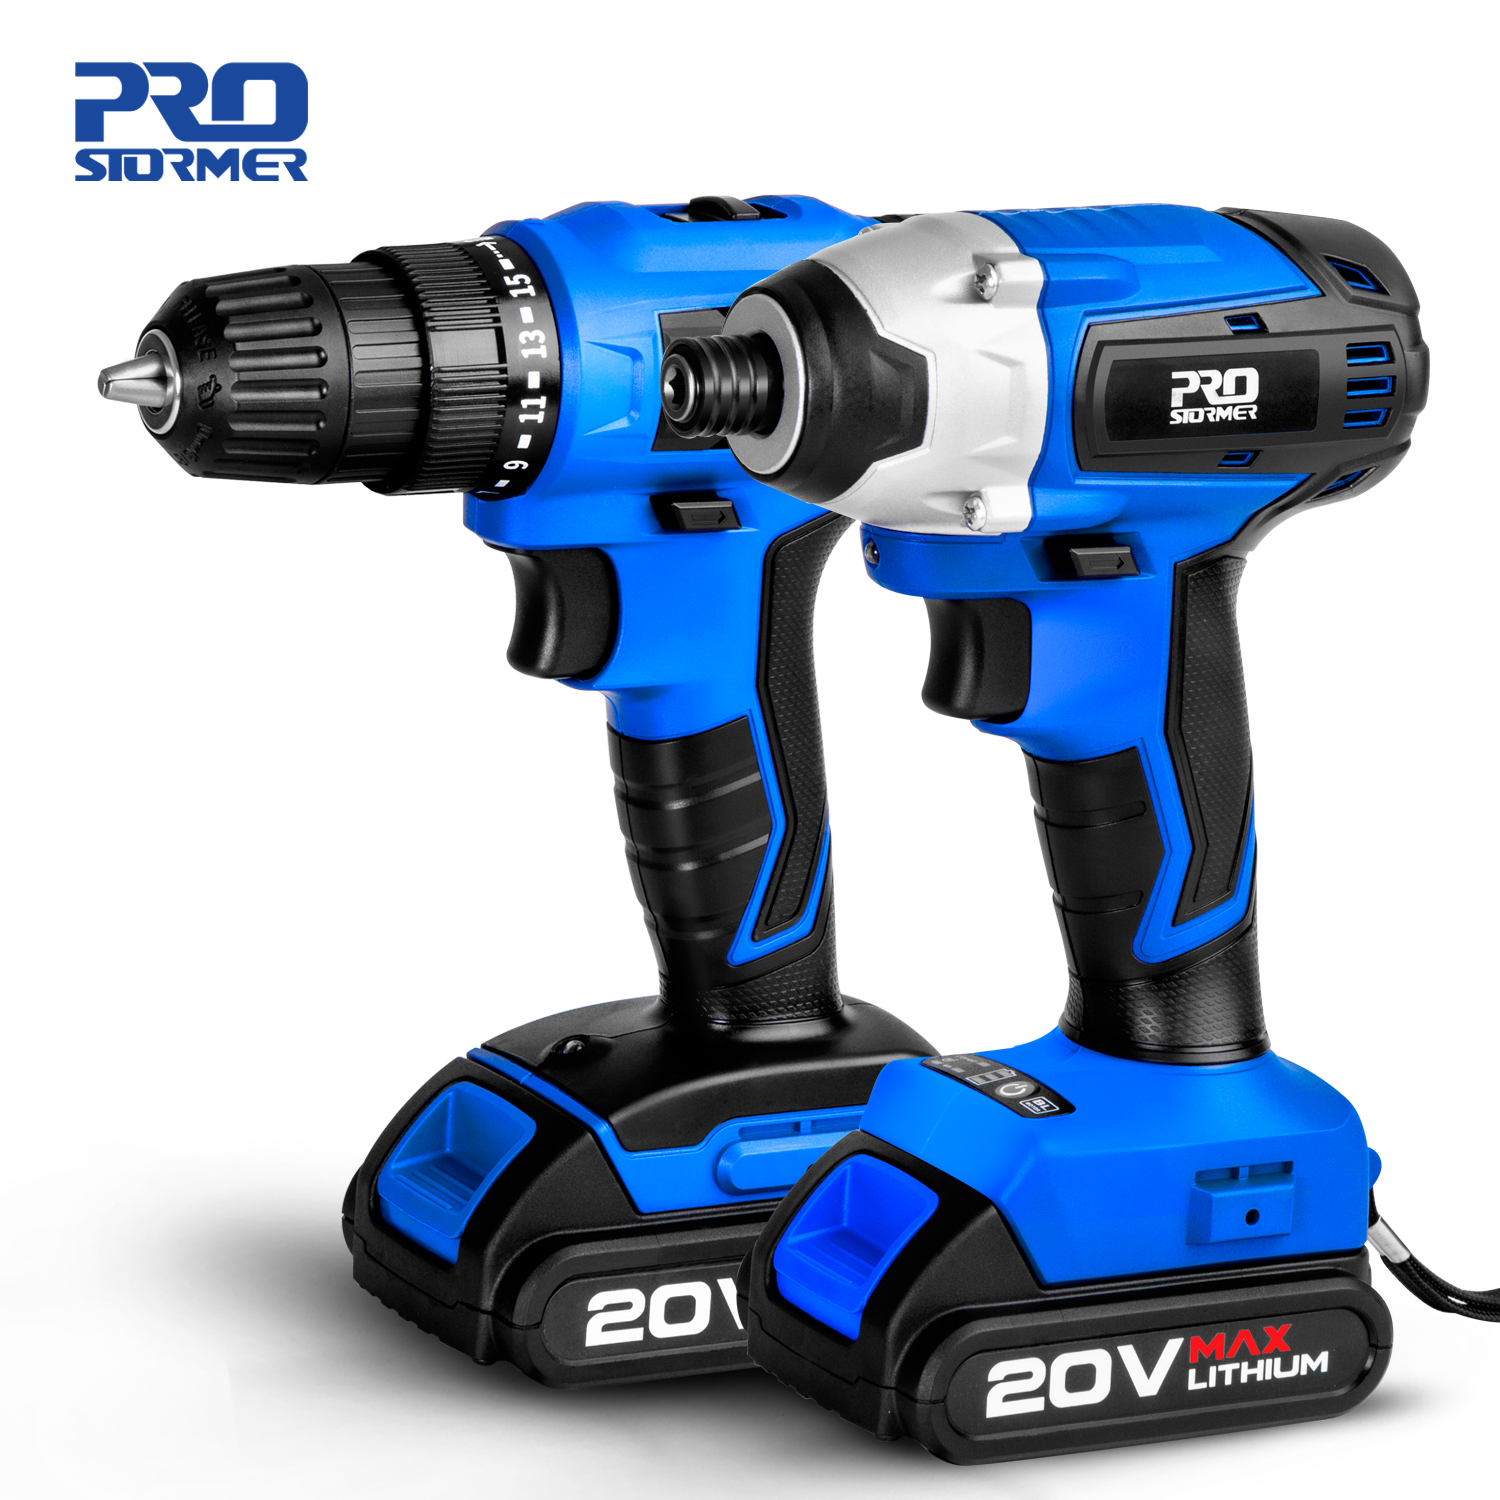 20V Cordless Impact Drill Cordless Screwdriver Optional Two-Piece Set 2000mAh Wireless Rechargeable Screwdriver By PROSTORMER